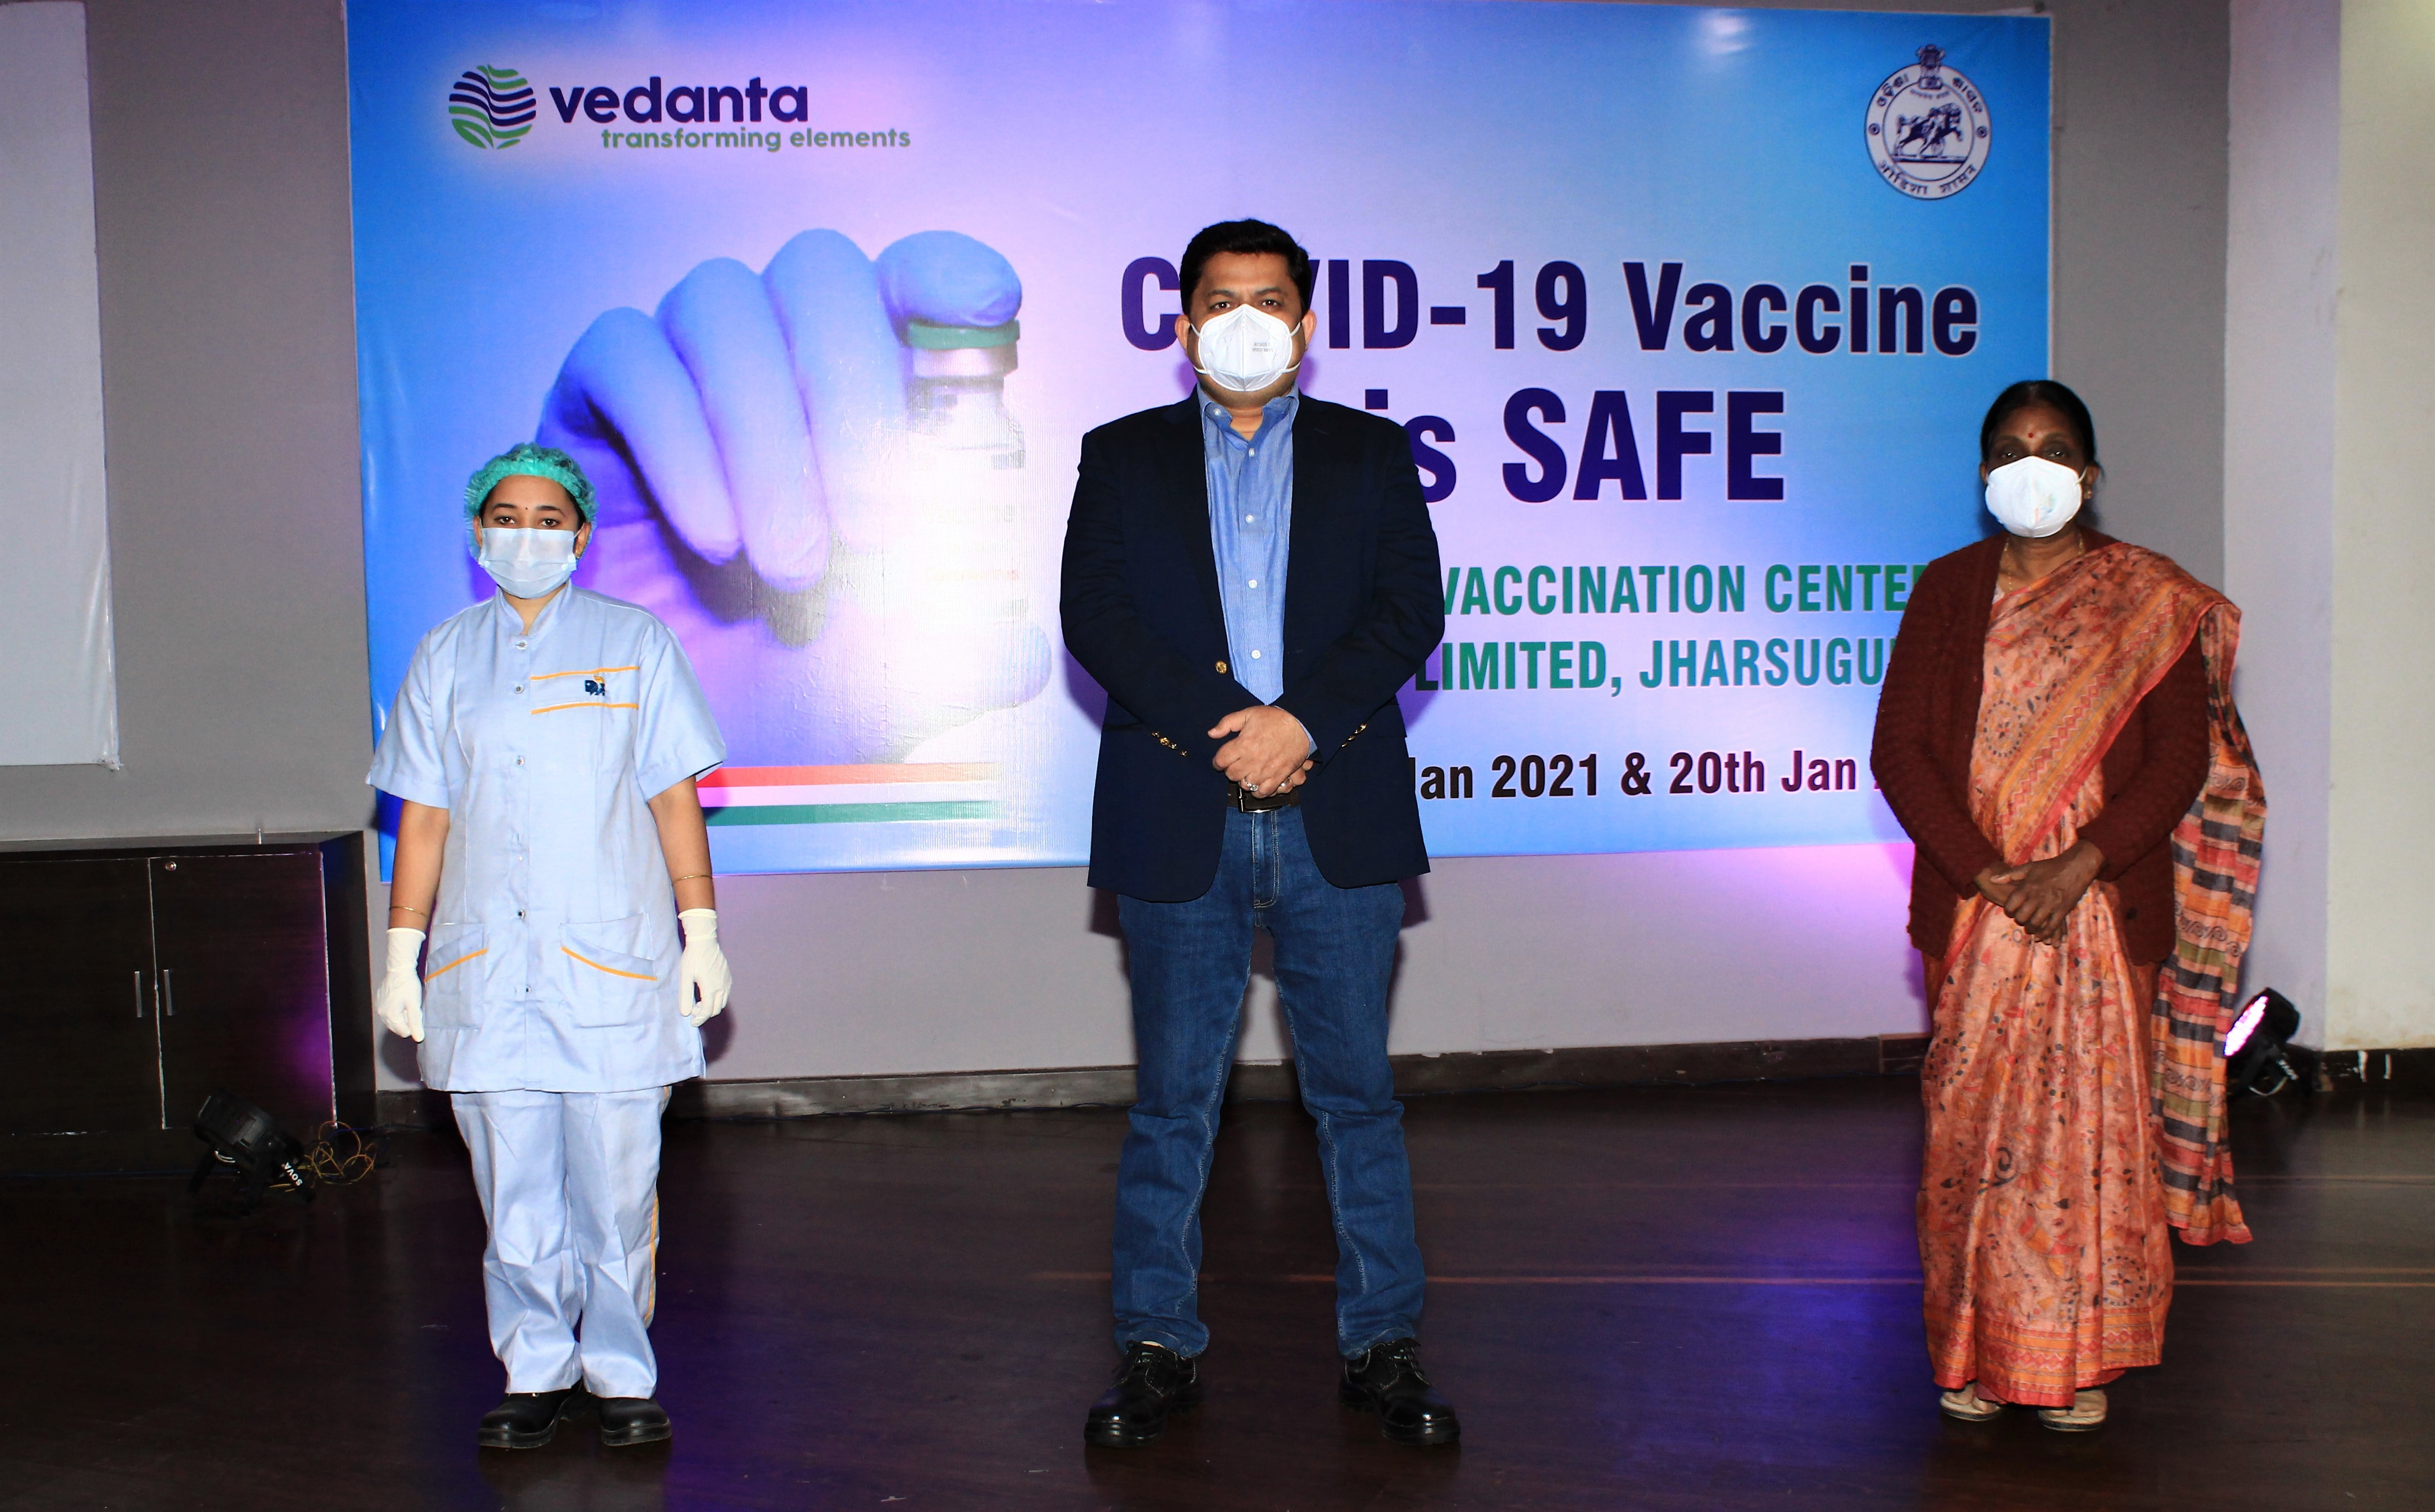 Mr. Rahul Sharma Dy. CEO - Aluminium (Centre), Vedanta's vaccinator (Left) and Dr. Suprava Barik, ADPHO, Jharsuguda (Right)